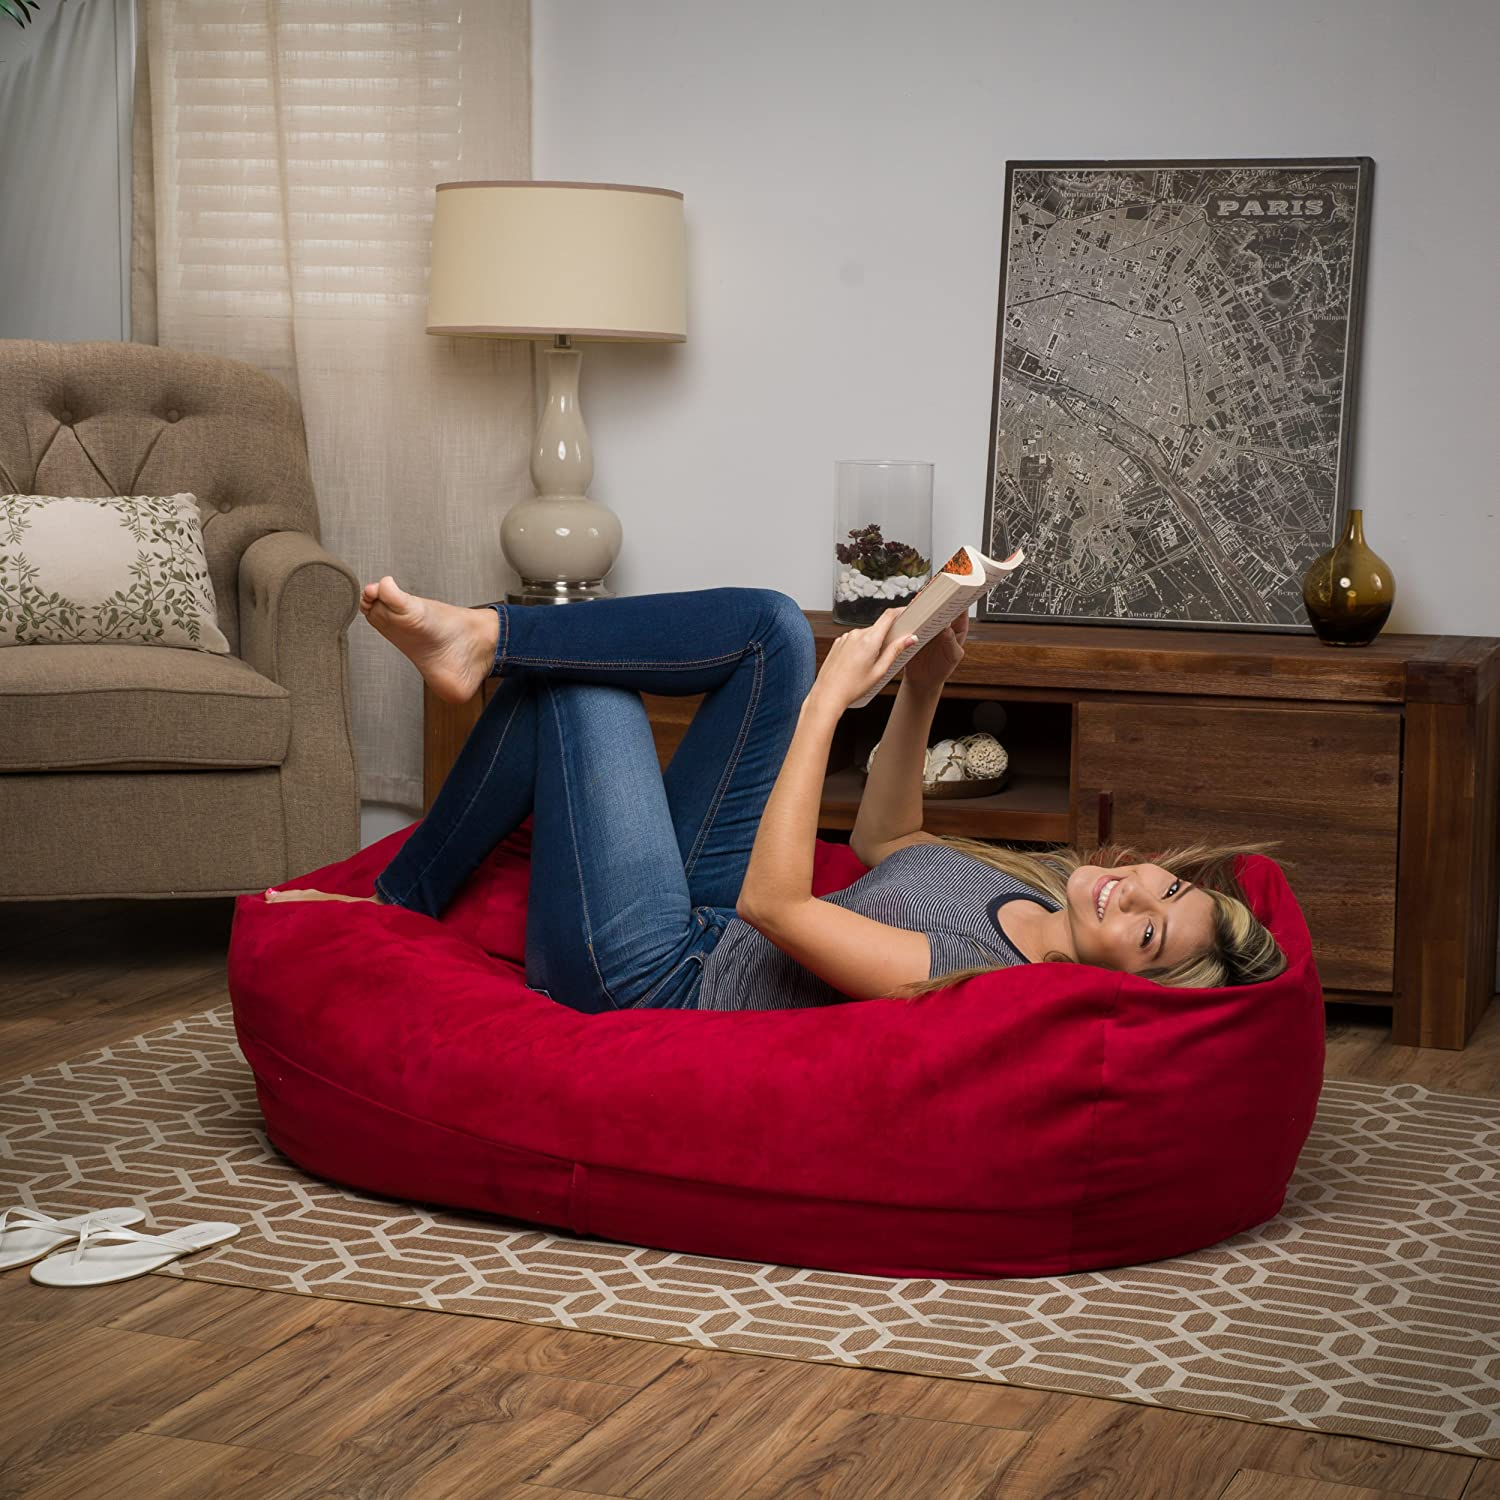 Great Deal Furniture 296770 Cassell Red Fabric 4-Foot Lounge Beanbag Chair,